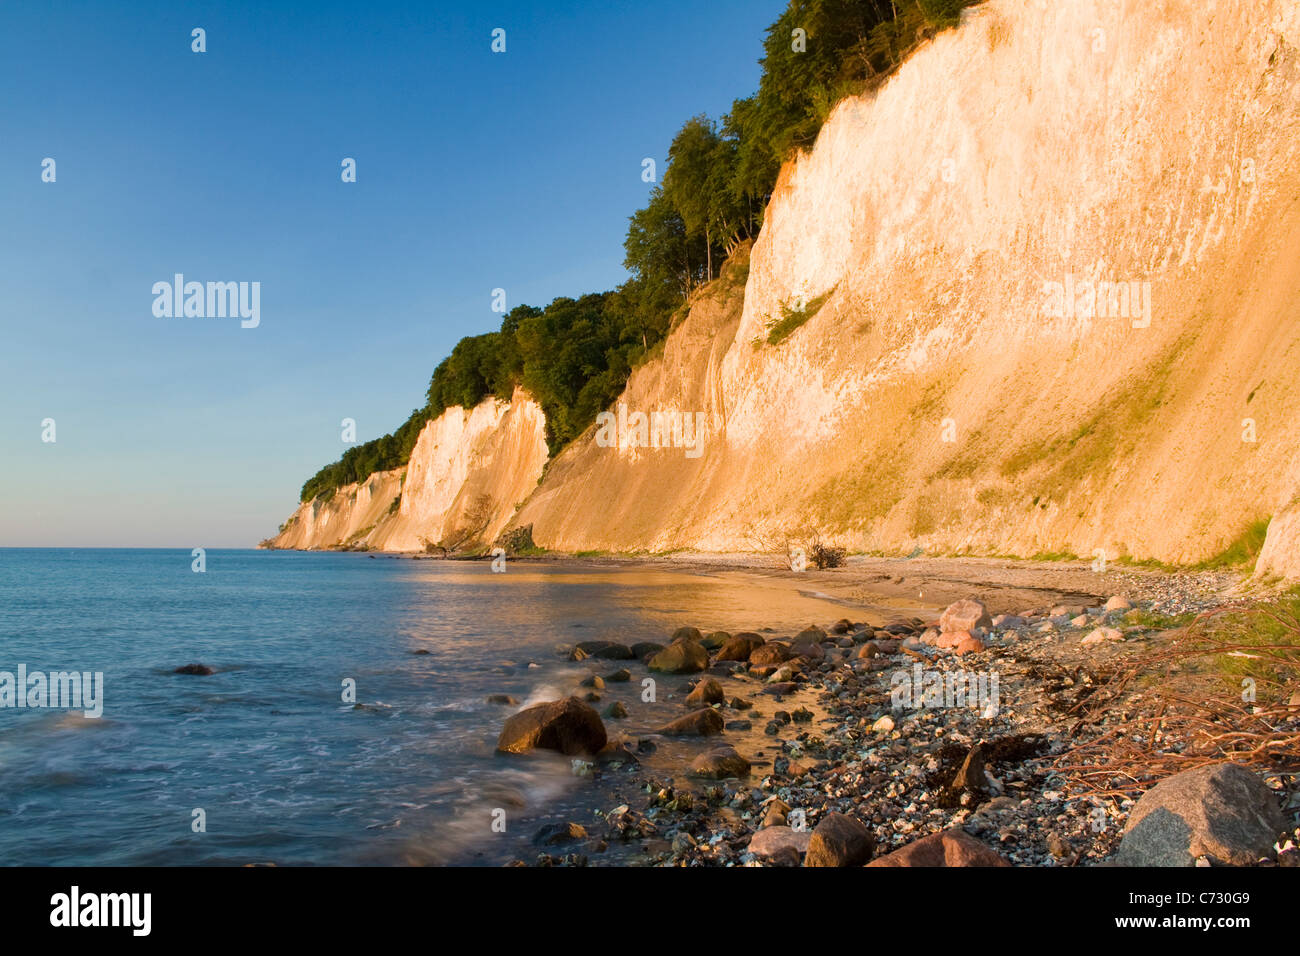 Chalk cliffs at sunrise in the Jasmund National Park, Ruegen Island, Mecklenburg-Western Pomerania, Germany, Europe Stock Photo